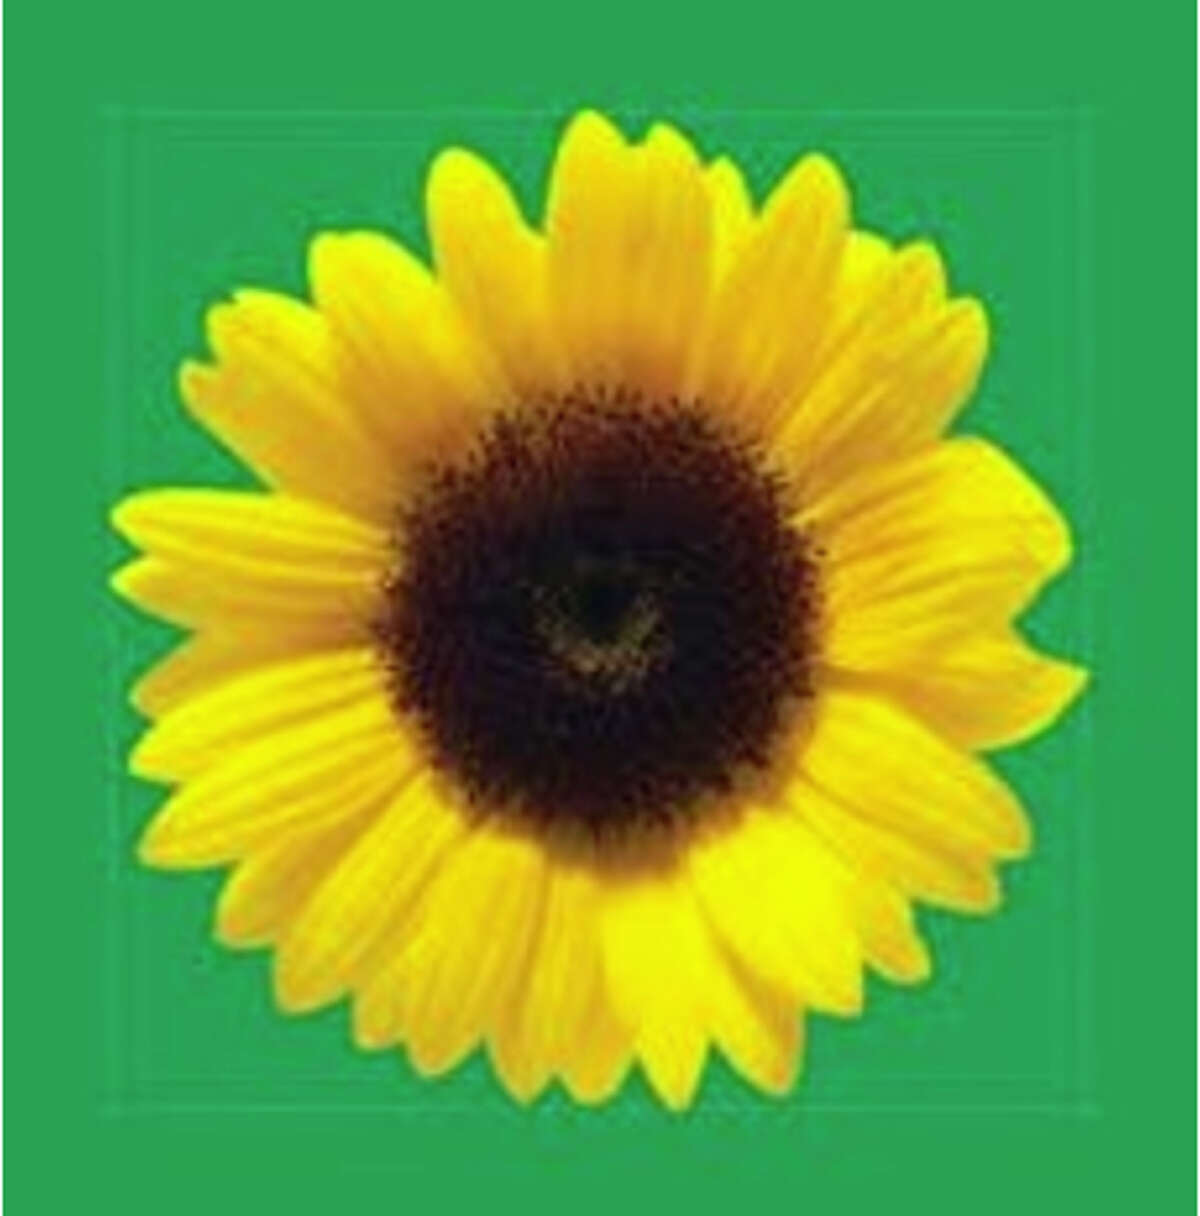 San Jose's airport now provides lanyards with a picture of a sunflower to those who have less-visible disabilities.